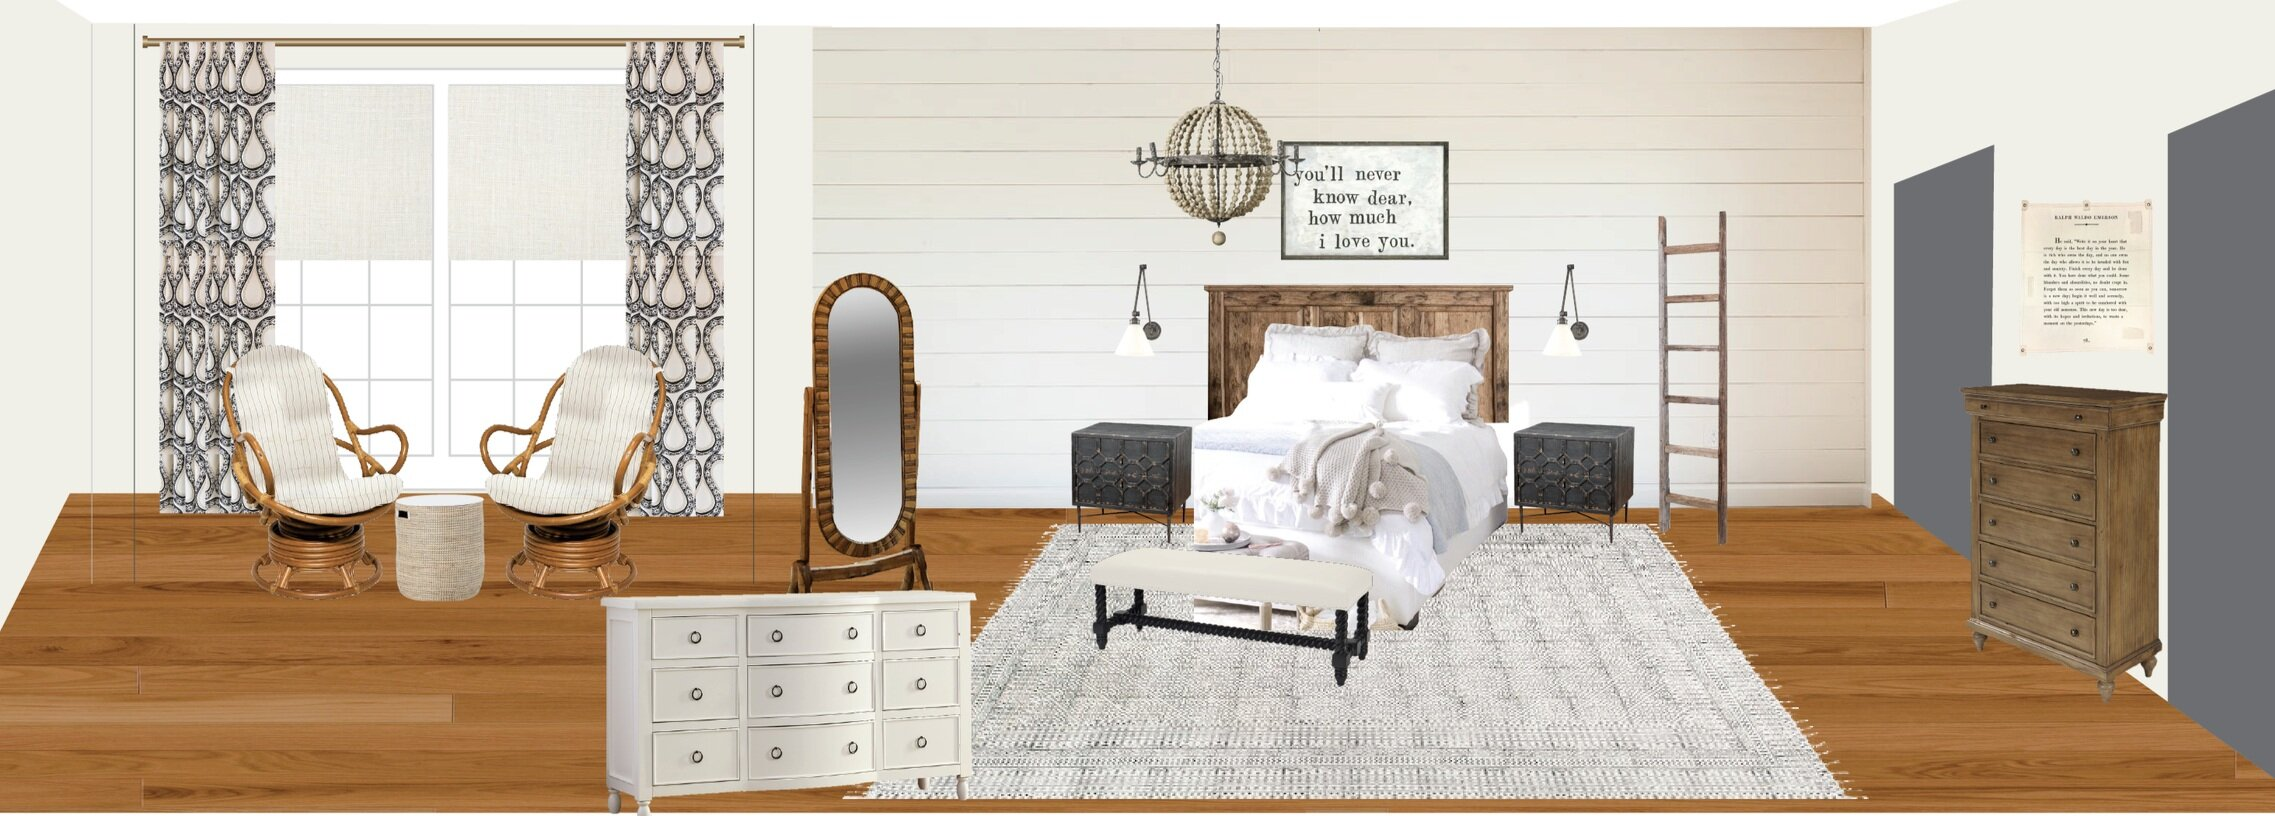 Another example of an option presented for a farmhouse-style master bedroom. All Peppermint room designs are presented in this way. Photo-realistic 3D renderings are also available.